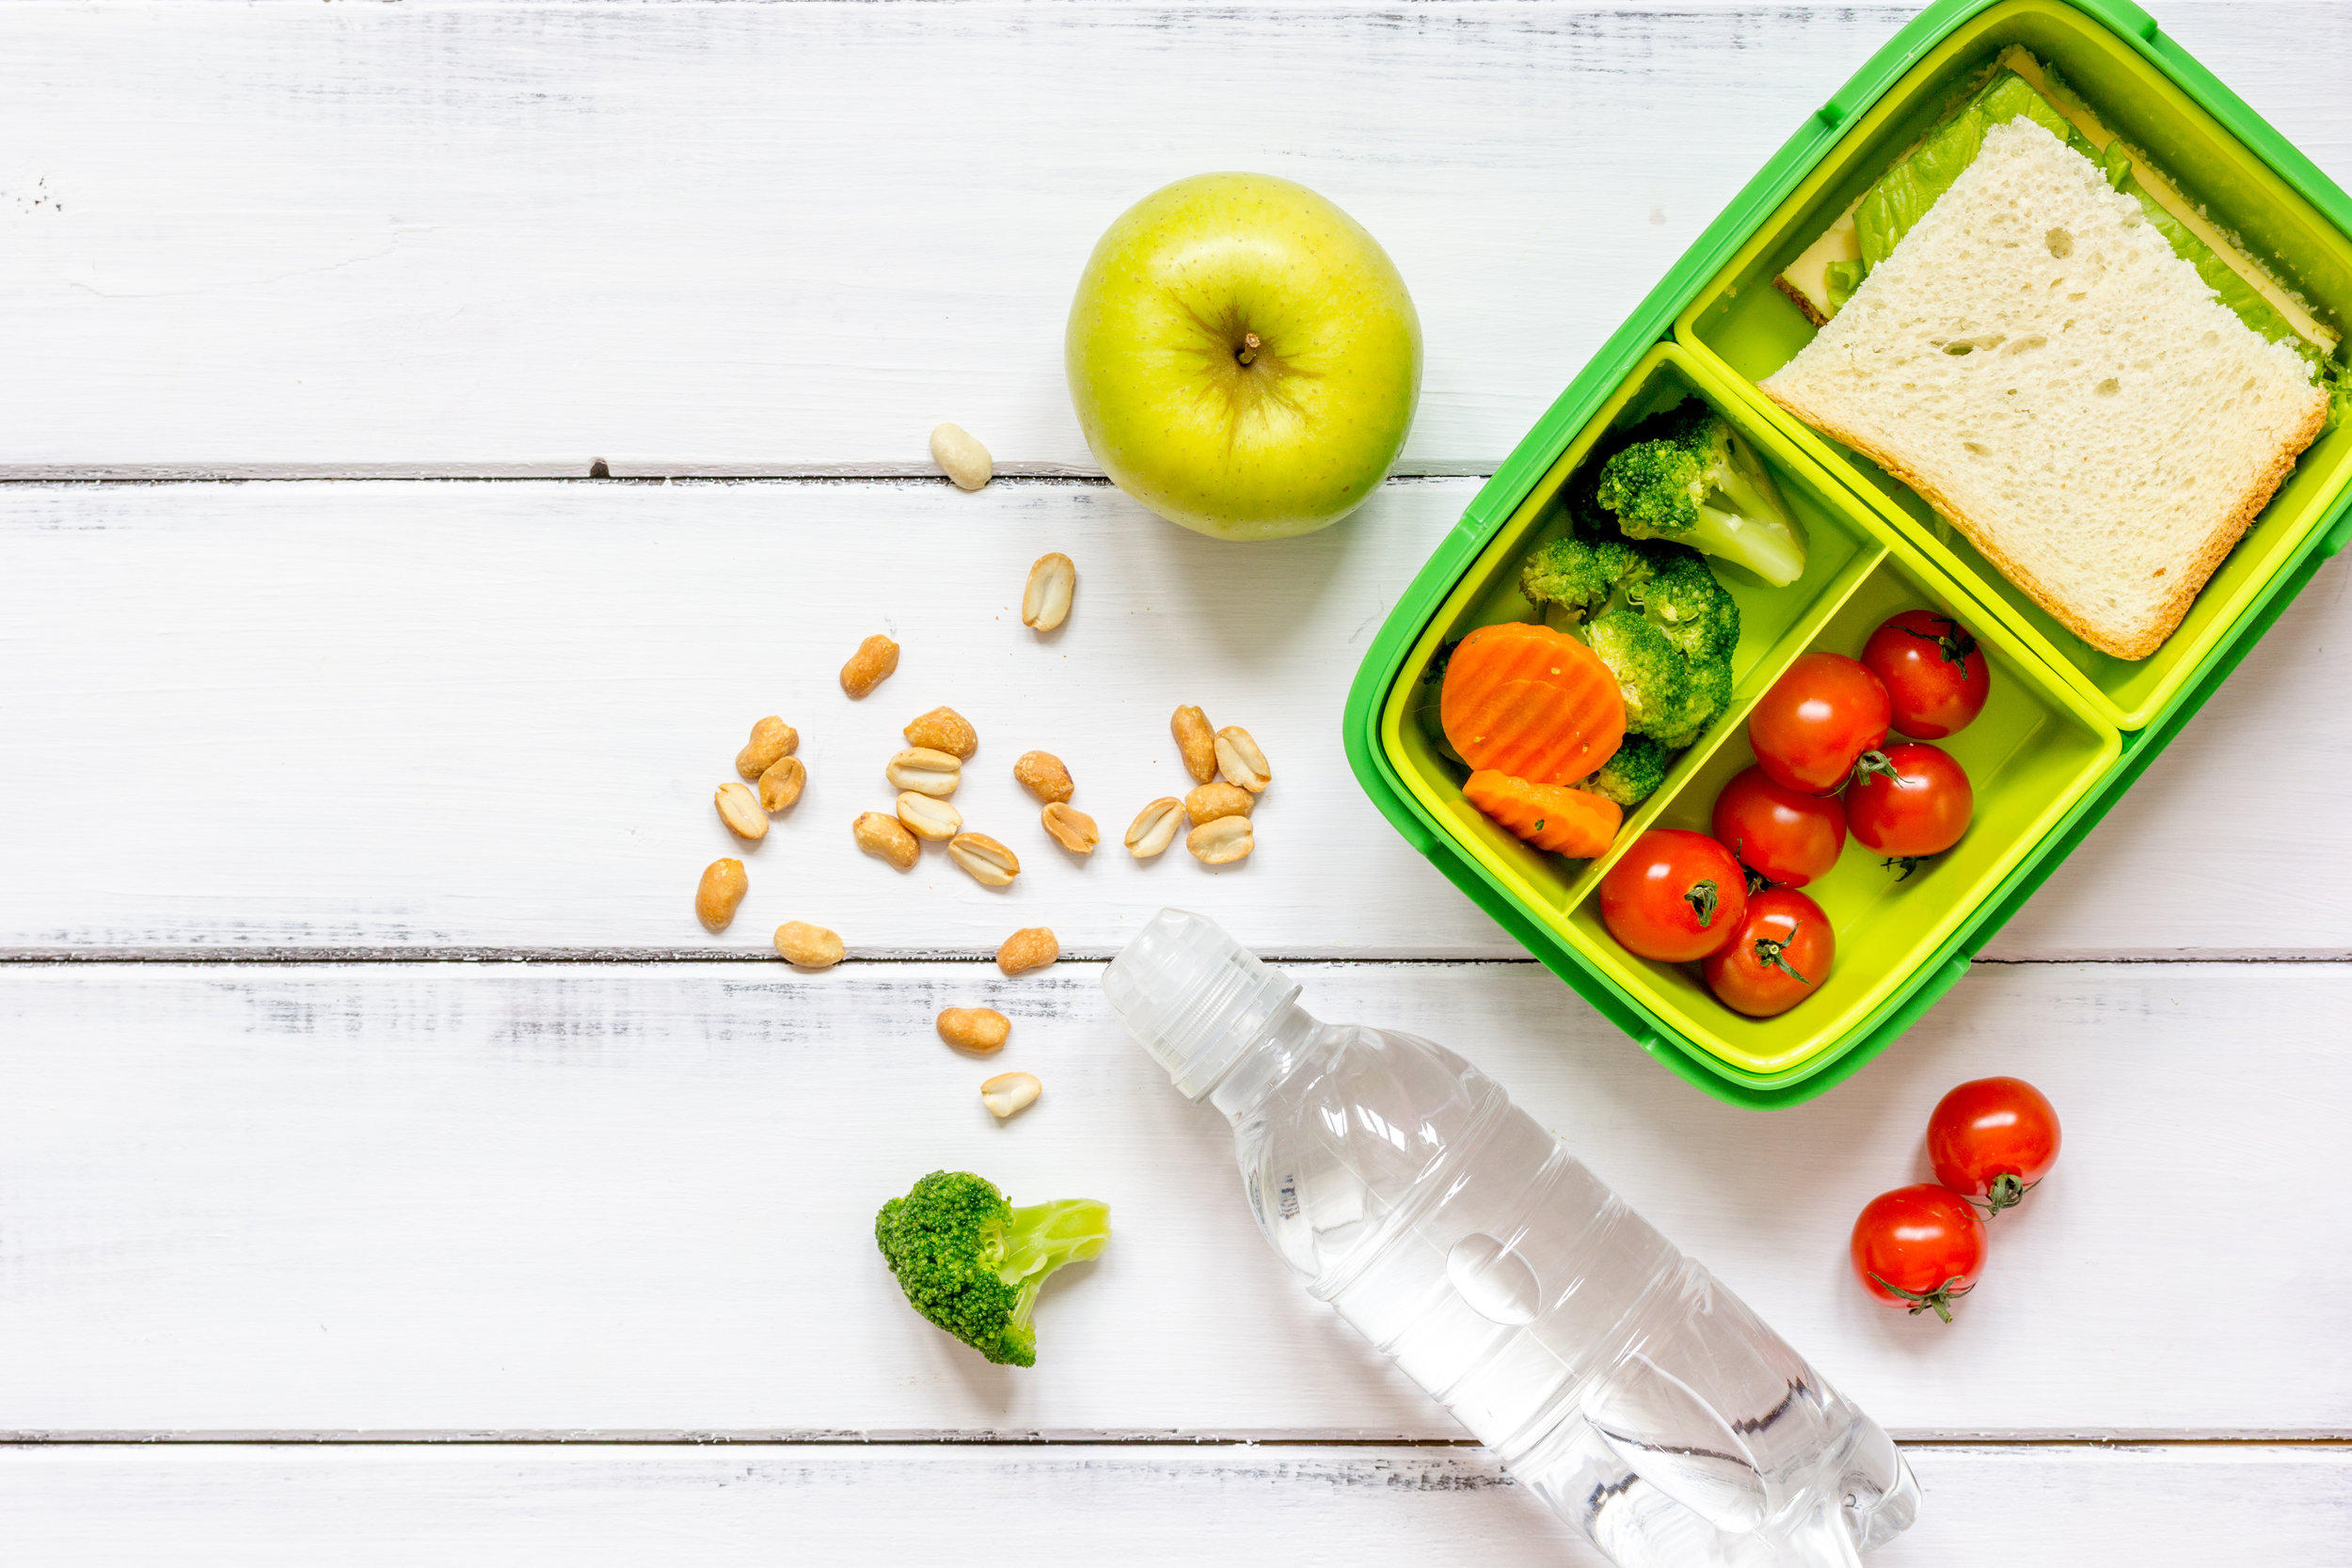 Customized healthy kids lunches delivered